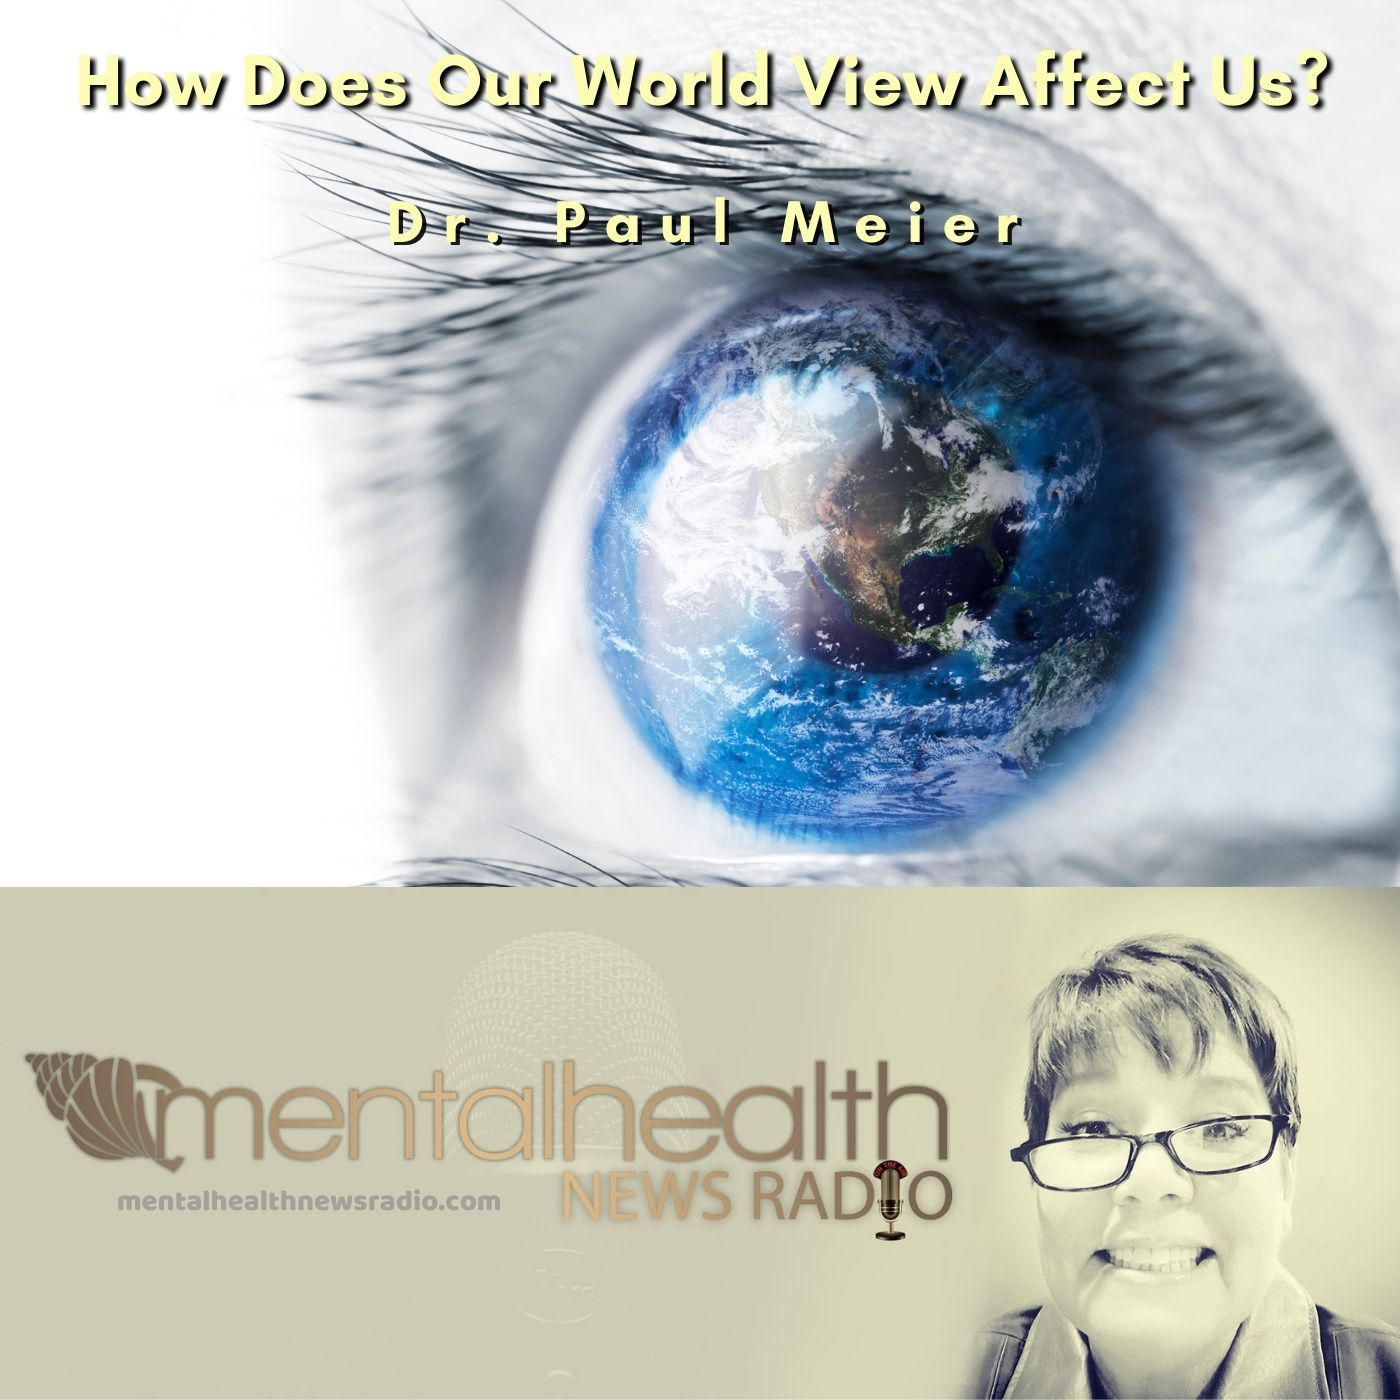 Mental Health News Radio - How Does Our World View Affect Us?